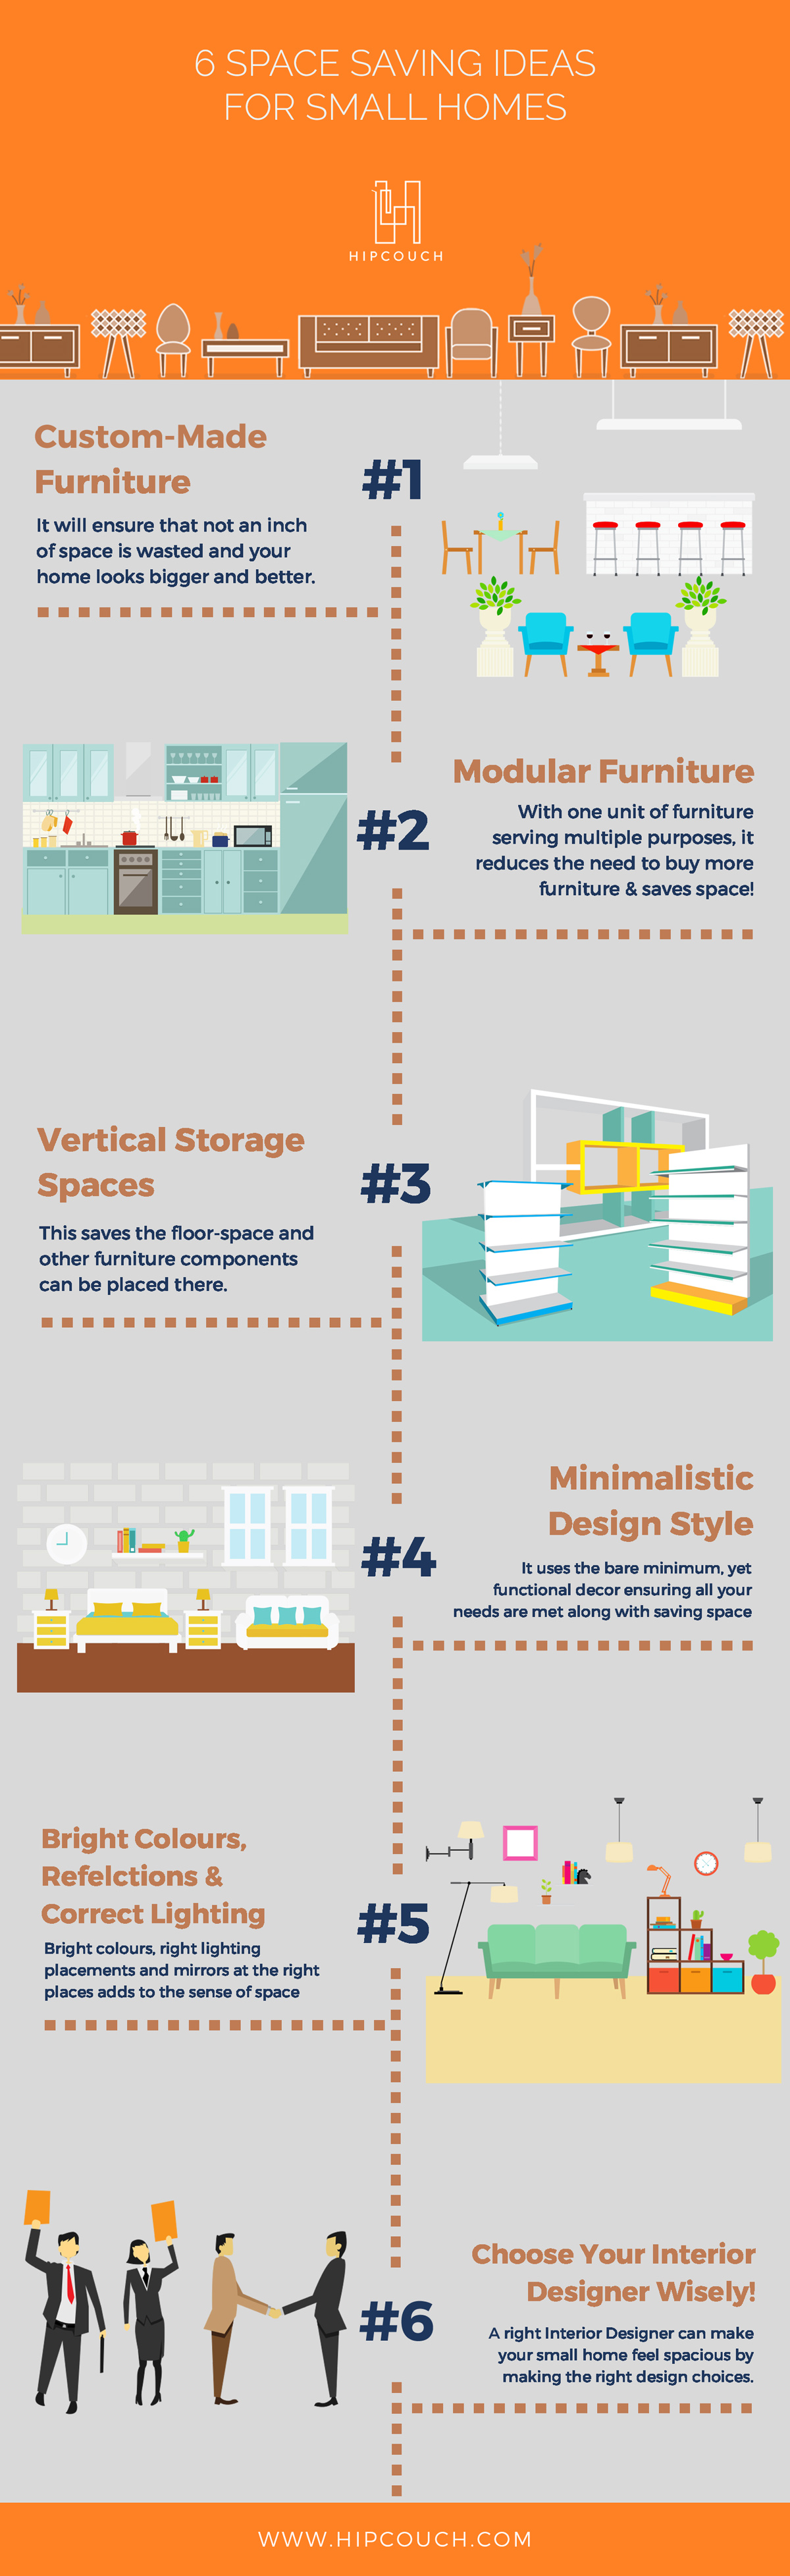 6 Space Saving Ideas for your small home / office